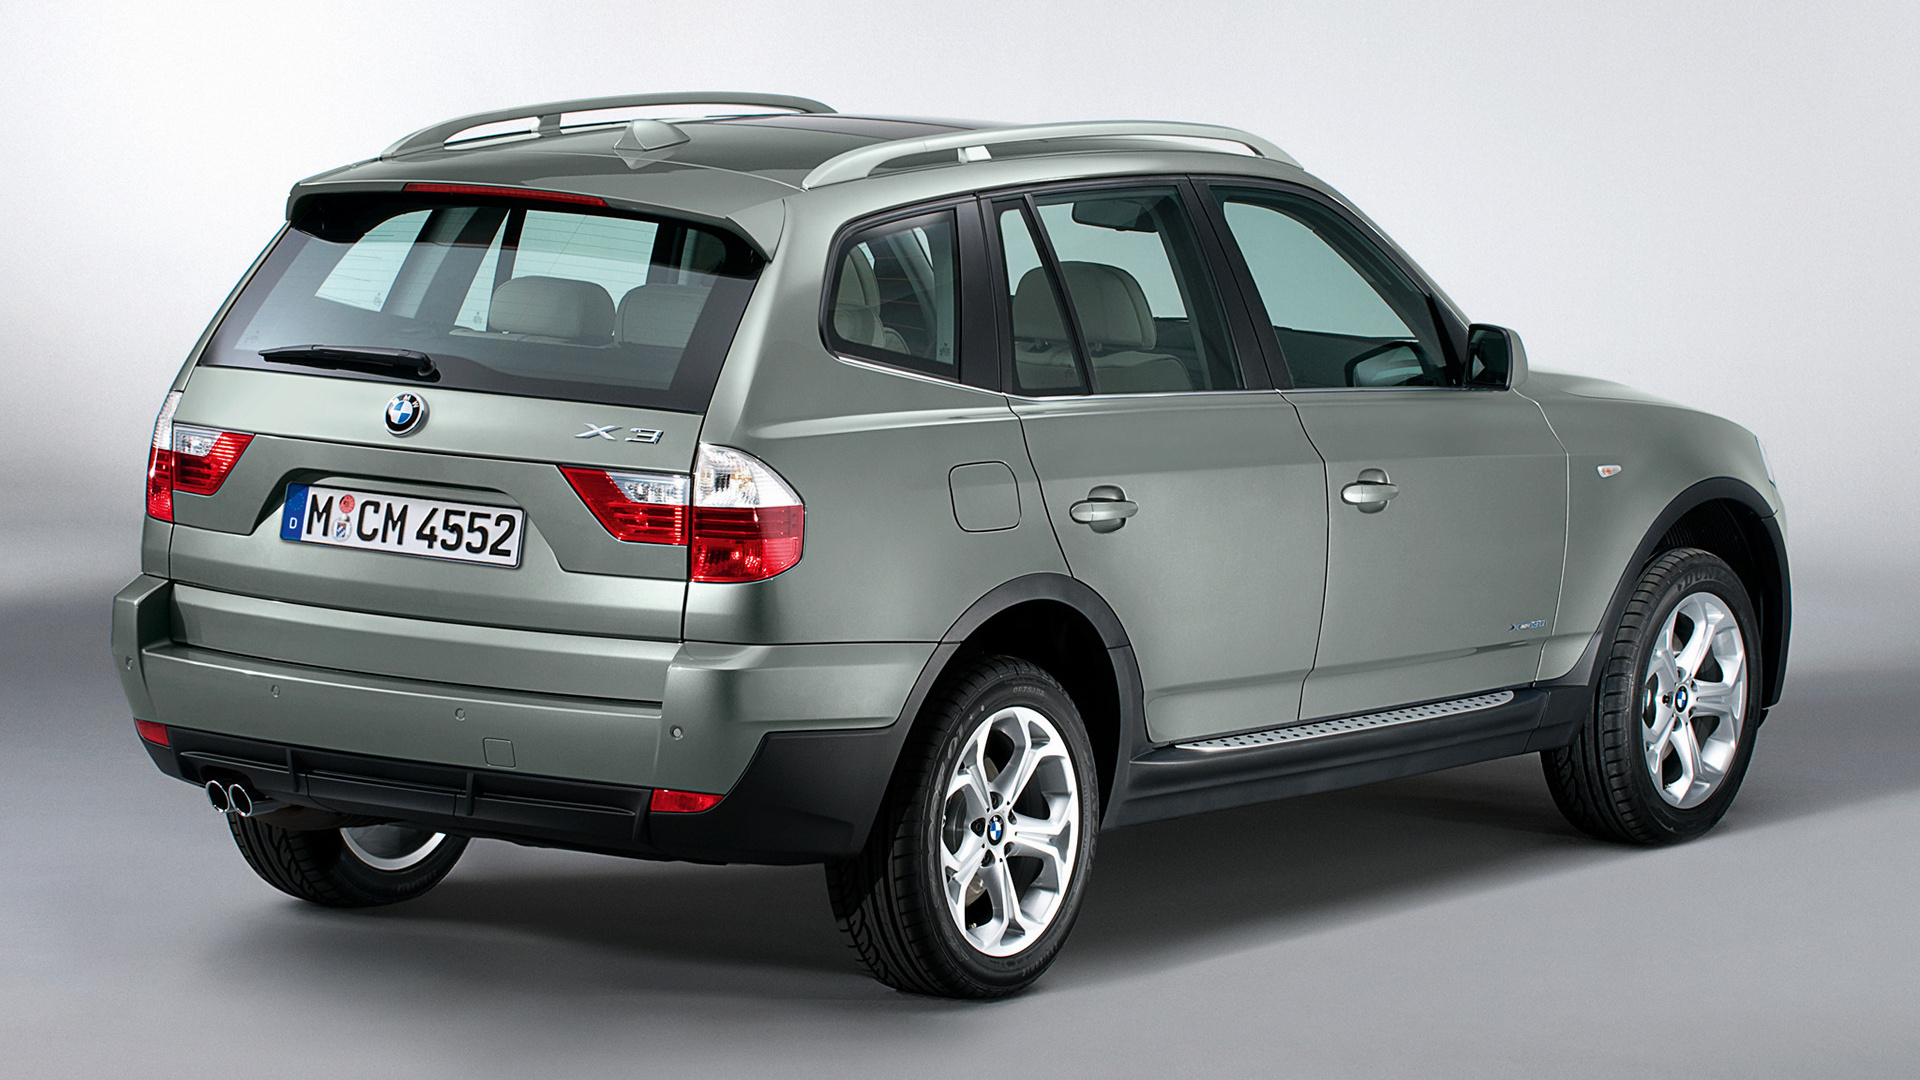 bmw x3 exclusive edition 2008 wallpapers and hd images car pixel. Black Bedroom Furniture Sets. Home Design Ideas